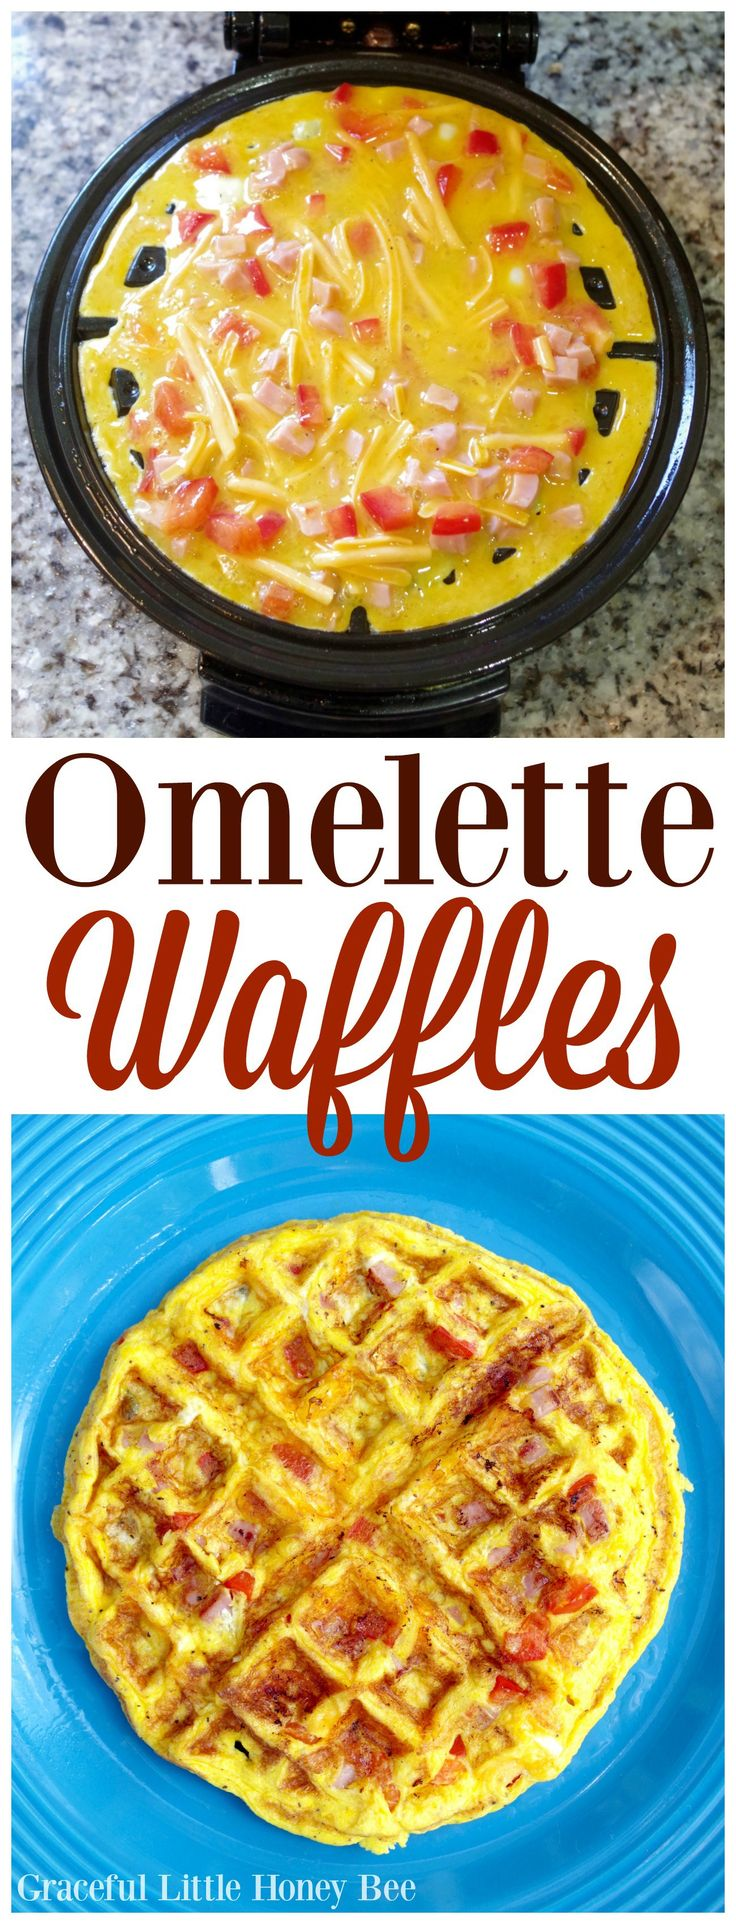 See how easy it is to make these Omelette Waffles for a quick and fun breakfast. Add in any fillings you want for customized dish!